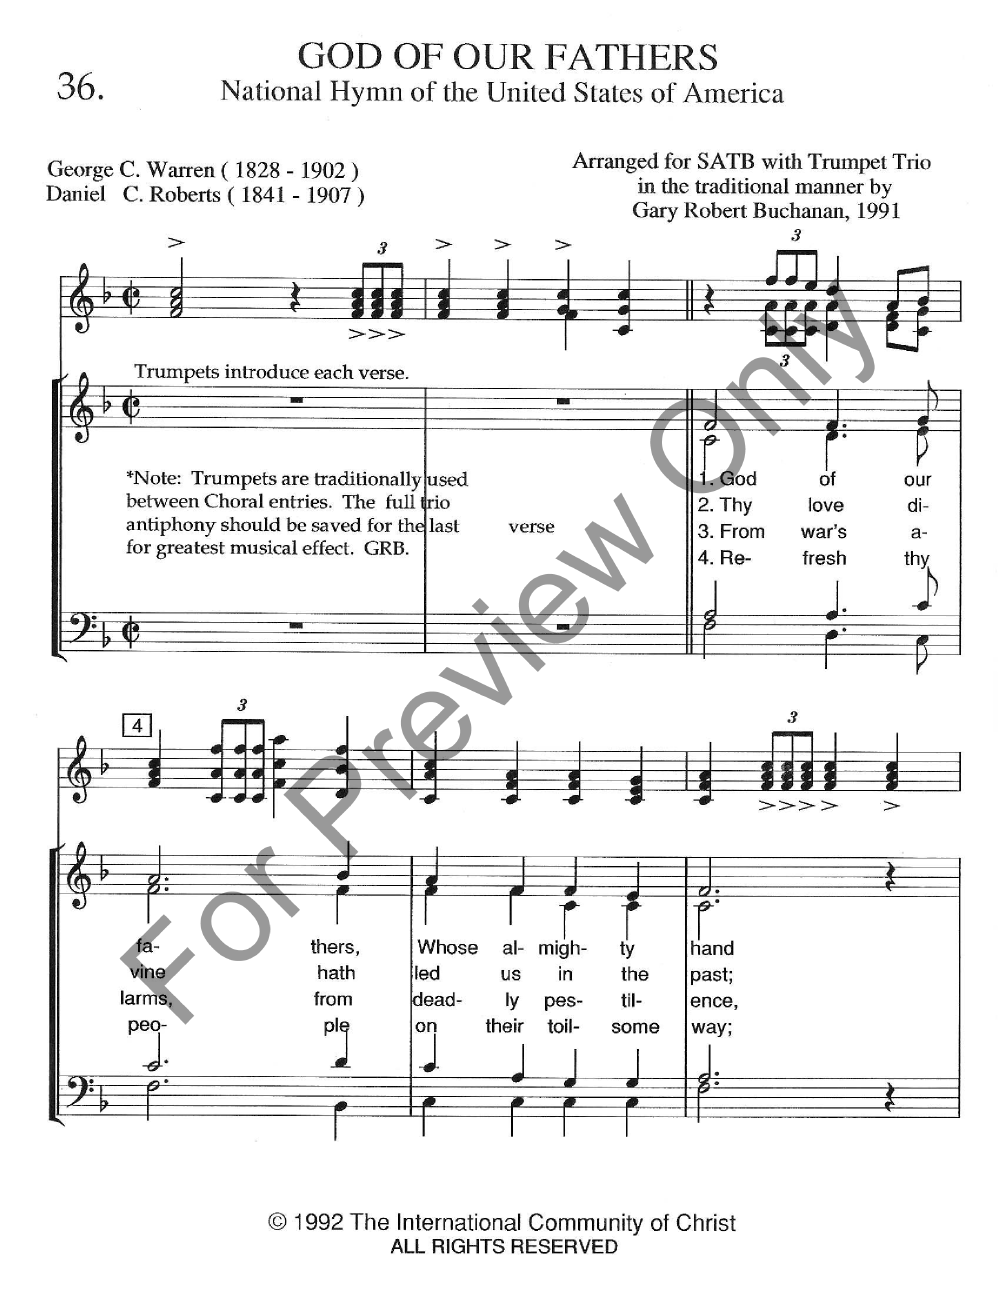 God of our fathers satb by gc warren jw pepper sheet music god of our fathers gc warren dc robertsarr gary buchanan the music guild thecheapjerseys Images